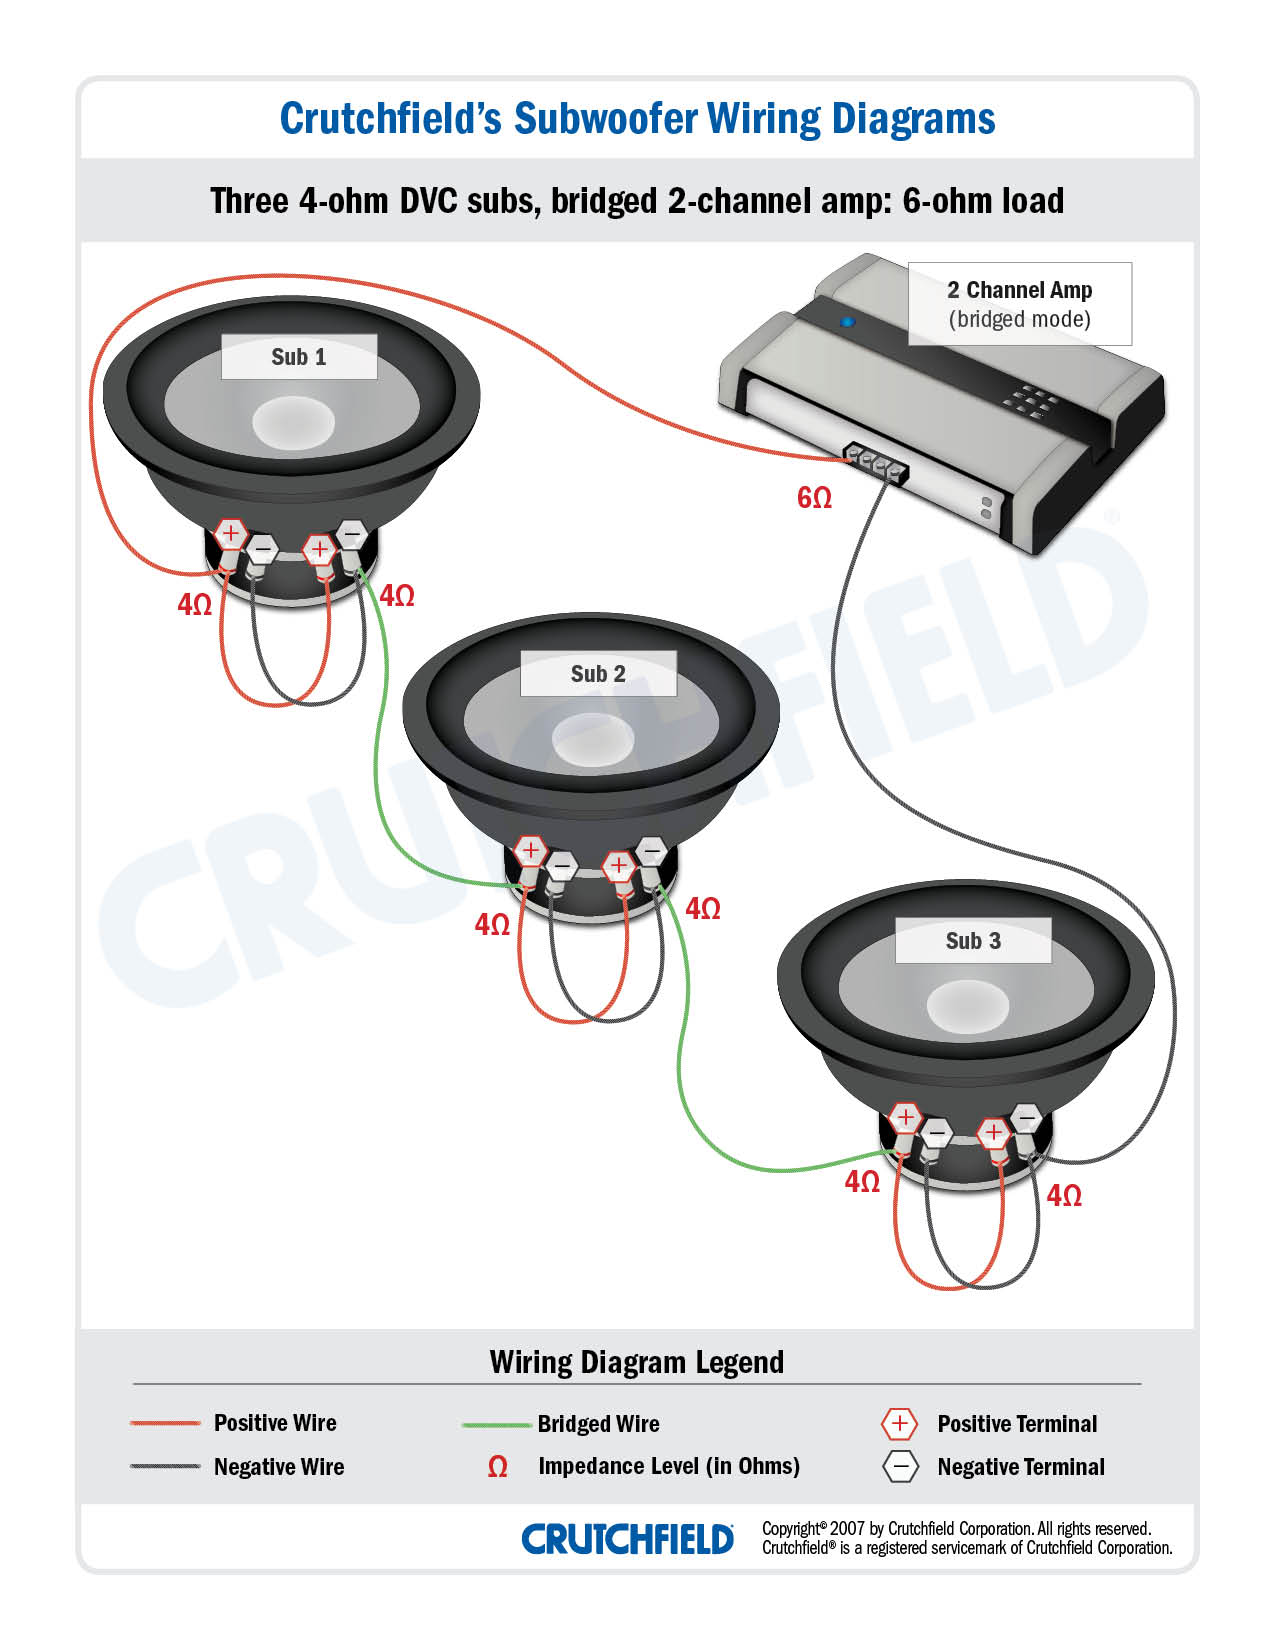 3 DVC 4 ohm 2 ch 3 subwoofer wiring diagram crutchfield subwoofer wiring diagram dual 1 ohm wiring diagram at edmiracle.co